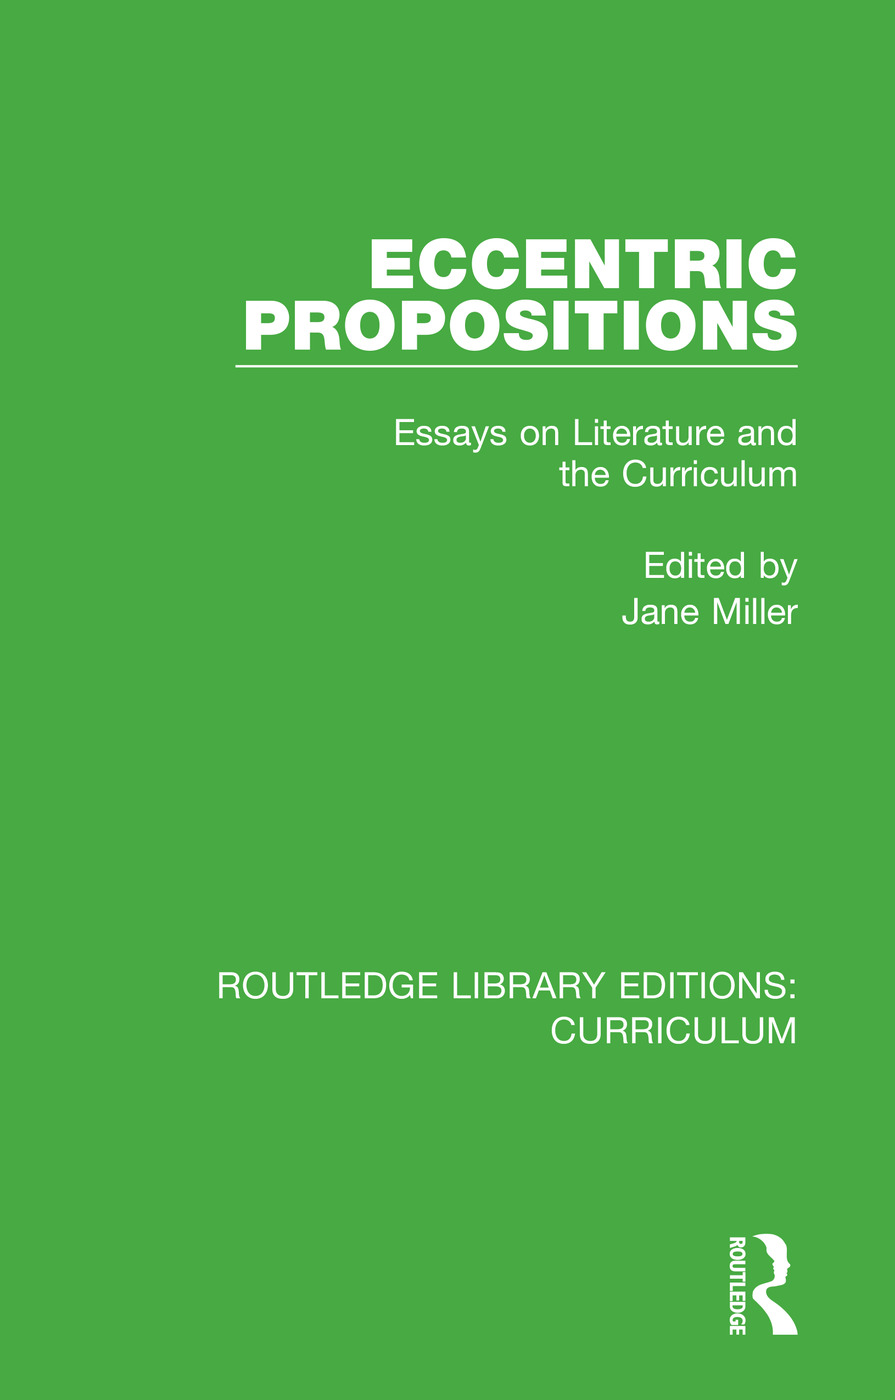 Eccentric Propositions: Essays on Literature and the Curriculum book cover